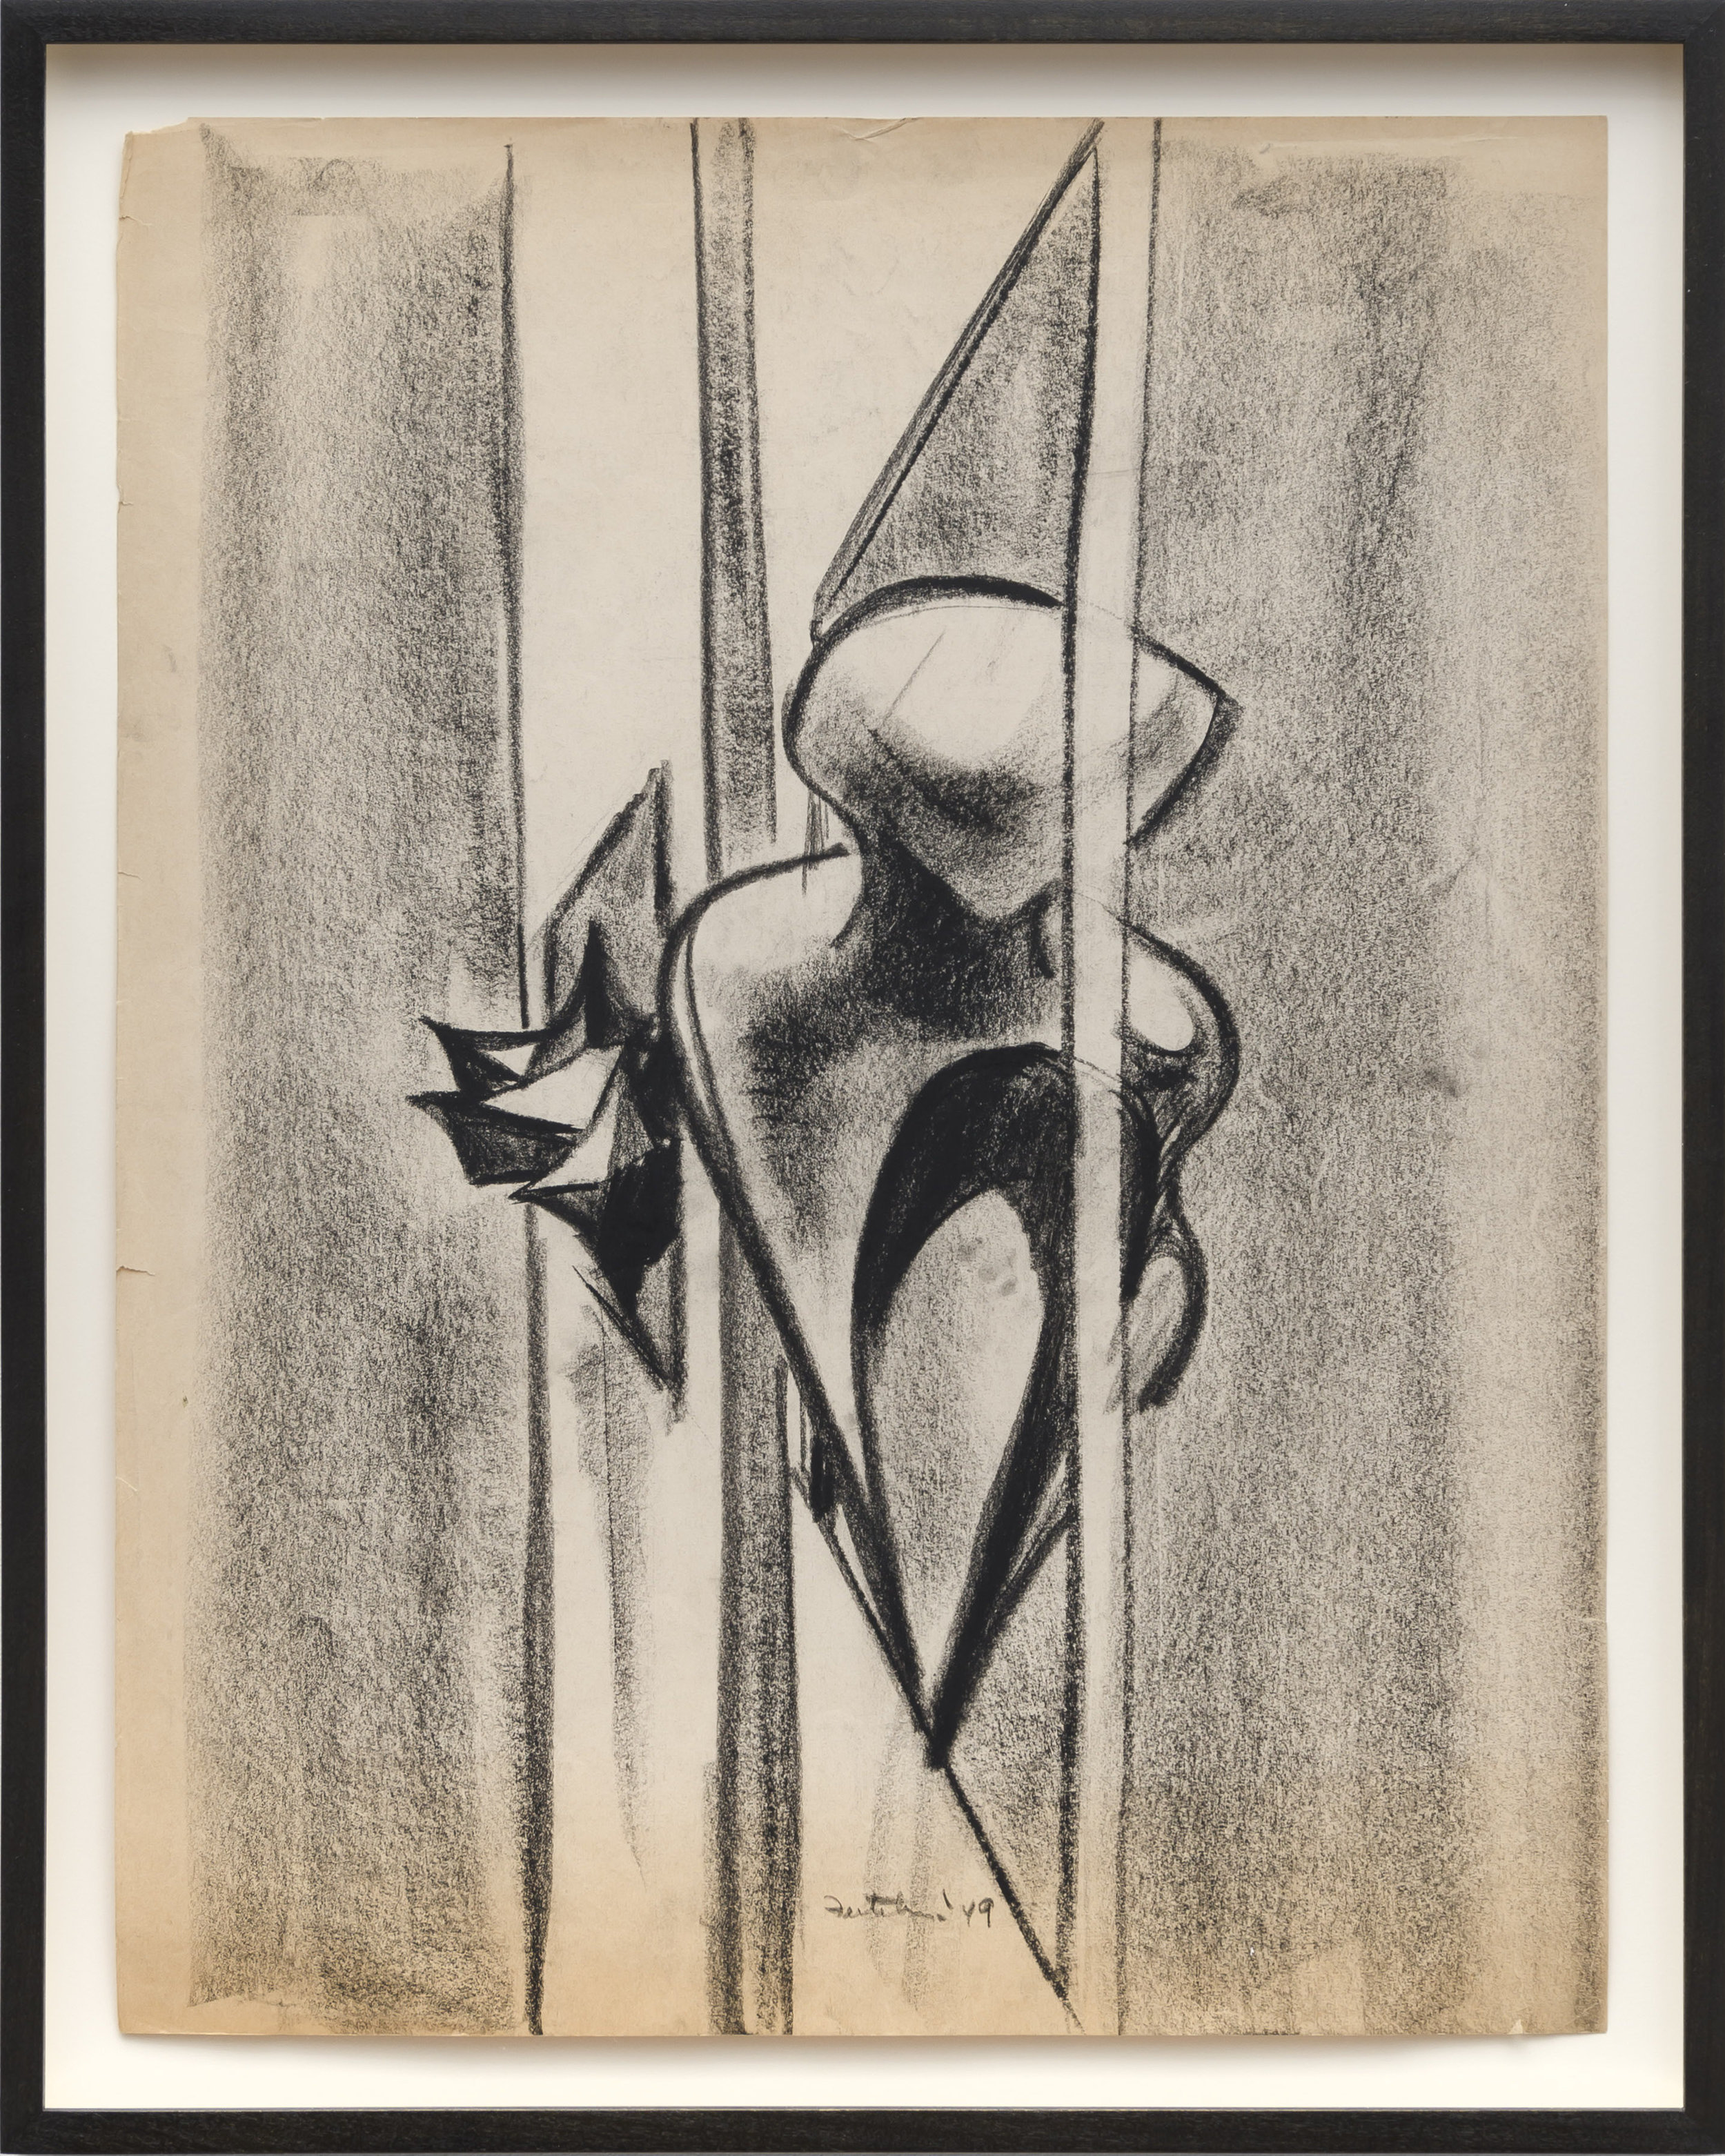 Lorser Feitelson (1898-1978)   Untitled Study , 1949 charcoal on paper  22 x 17 inches; 55.9 x 43.2 centimeters